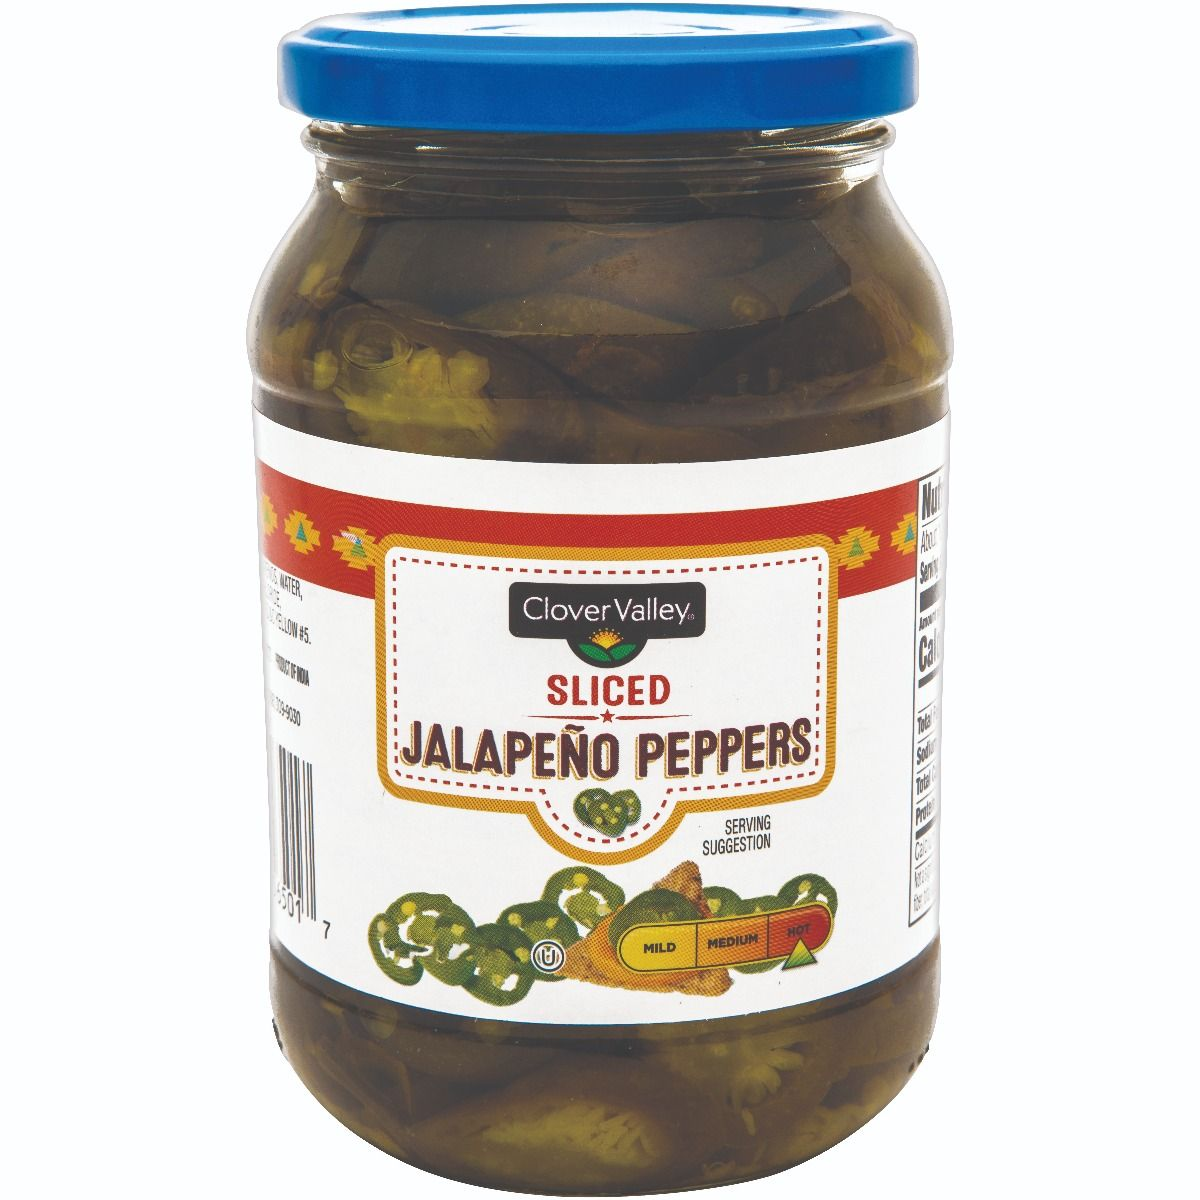 Clover Valley Jalapeno Slices, 16 oz